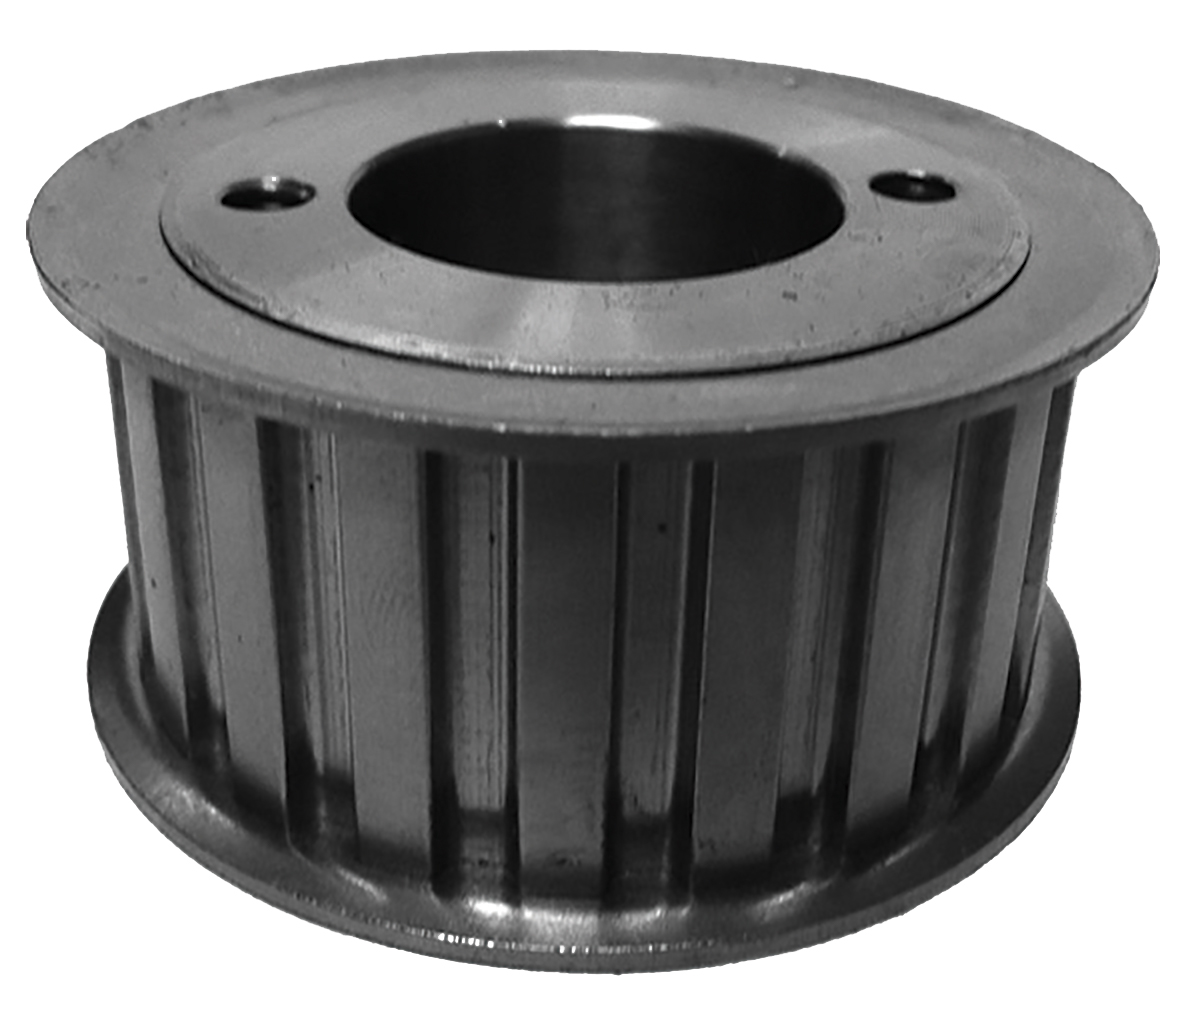 48LP100 - Cast Iron Imperial Pitch Pulleys